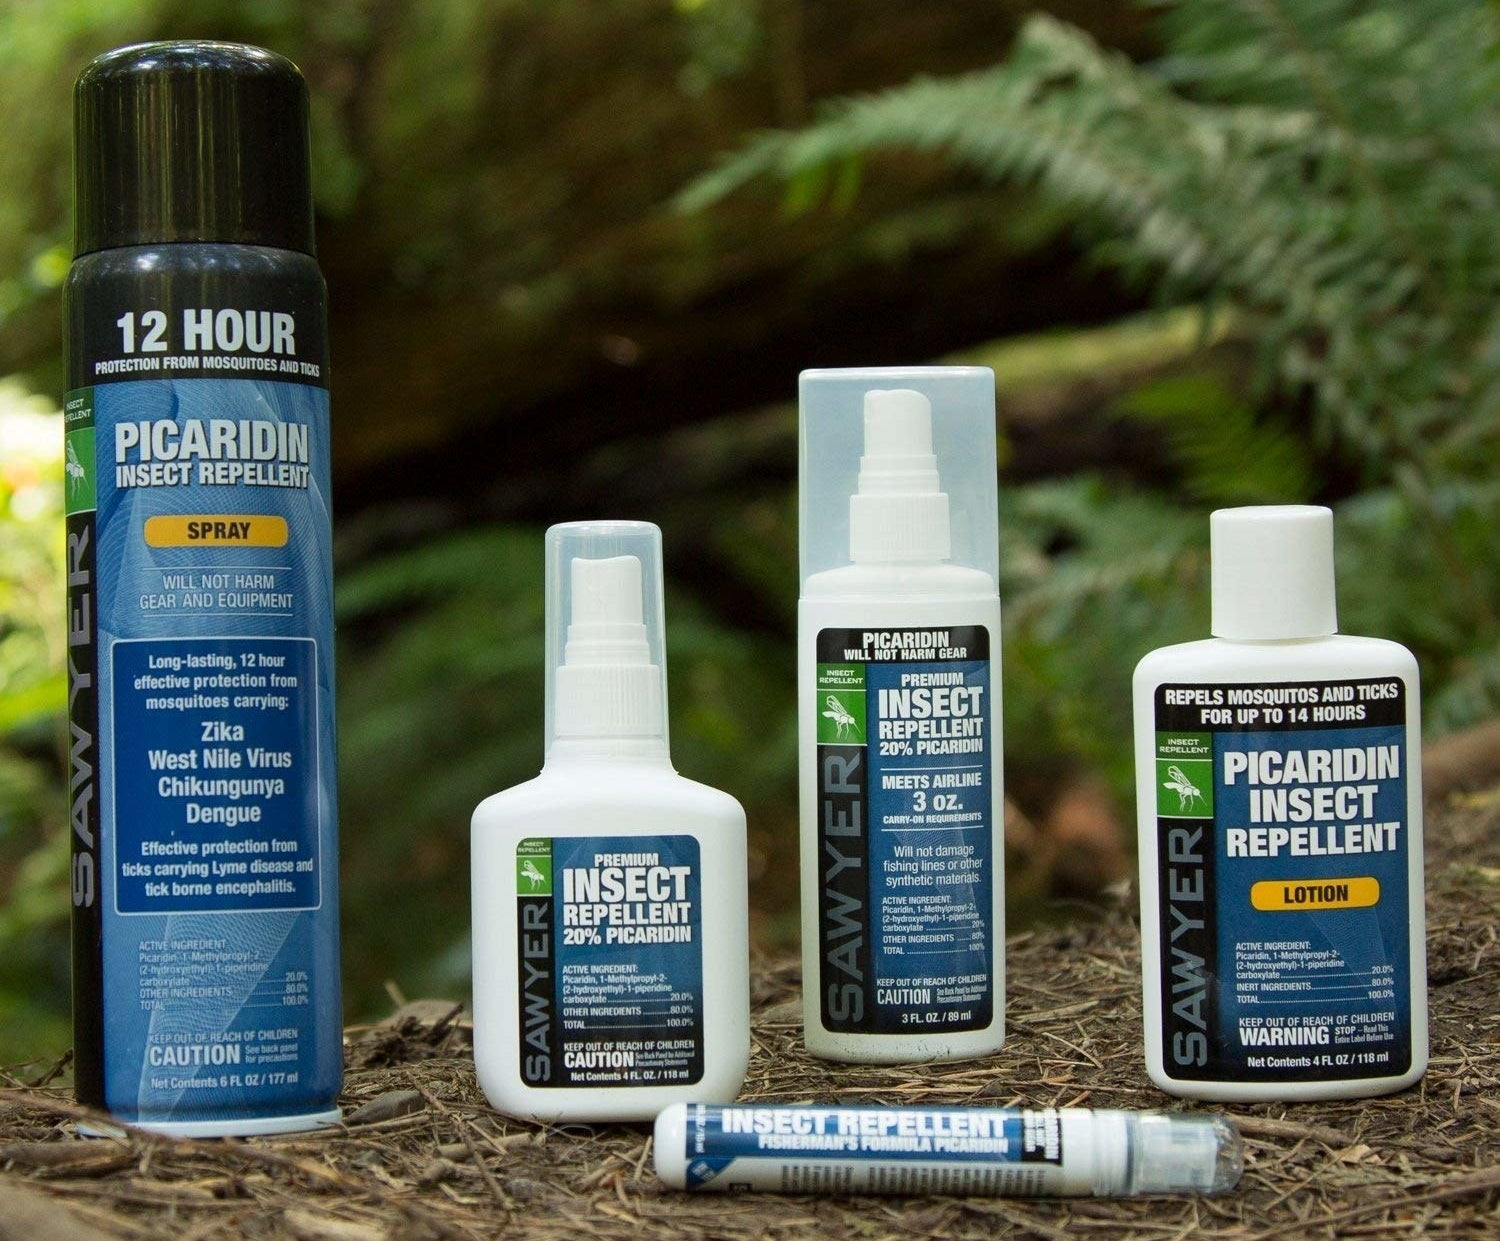 """It's made with picaridin, a super effective repellent that's less harsh than DEET and works better against some bugs, like flies.Promising review: """"This stuff is FANTASTIC! We took it on a long, wet canoe trip through the Adirondack mountains (which are notorious for bad insects) and it worked better than anything we've ever used before including DEET (which I hate using, hate having on my skin, and hate damaging all my gear with!). On the first day, I applied this lotion like sunscreen to every bit of exposed skin and noticed that I seemed instantly invisible to the mosquitoes. They were everywhere and would sometimes even land, but never bit AT ALL. The lotion smelled kind of pleasantly like Elmer's glue when it was wet and then quickly dried and had no smell at all. The bottle said to reapply after 14 hours but I didn't. About halfway through the second day, I went swimming. As soon as I got out of the water I was absolutely swarmed! The lotion had lasted for about 36 hours and then only washed off when I swam. I applied more lotion and the mosquitoes instantly DISAPPEARED!"""" —John VeeGet four ounces of the lotion from Amazon for $8.07 (also available in nine other sizes and as a spray)."""